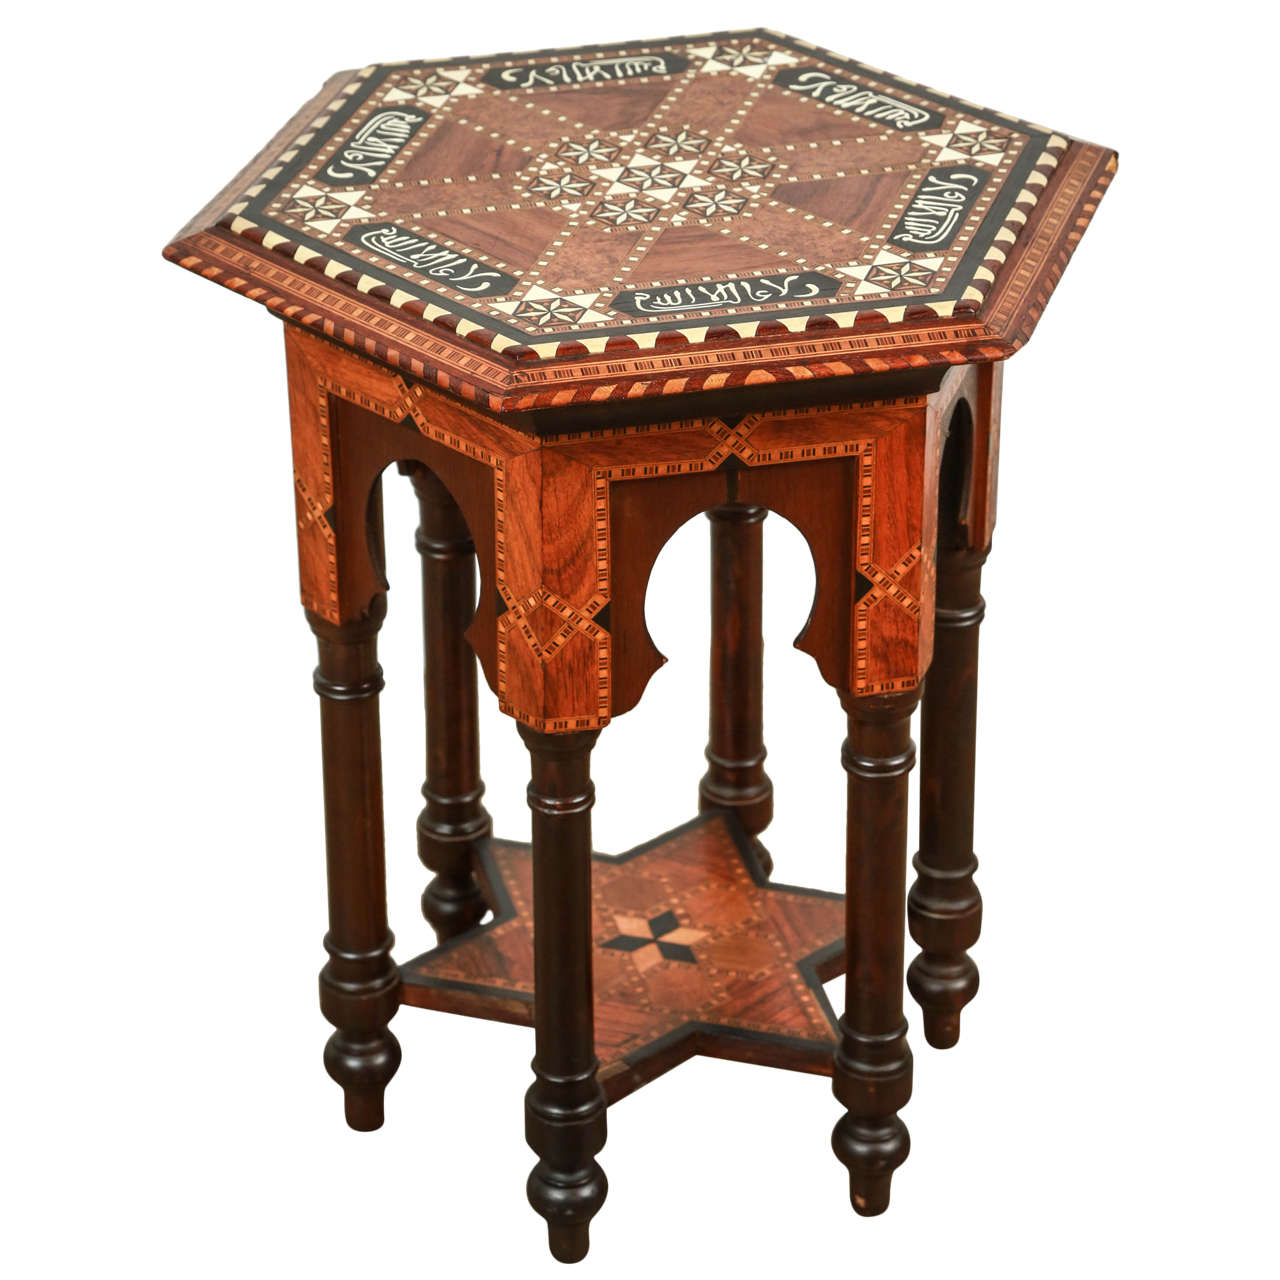 Alhambra Hispano-Moresque Marquetry Wood Side Moorish Table For Sale - Alhambra Hispano-Moresque Marquetry Wood Side Moorish Table At 1stdibs